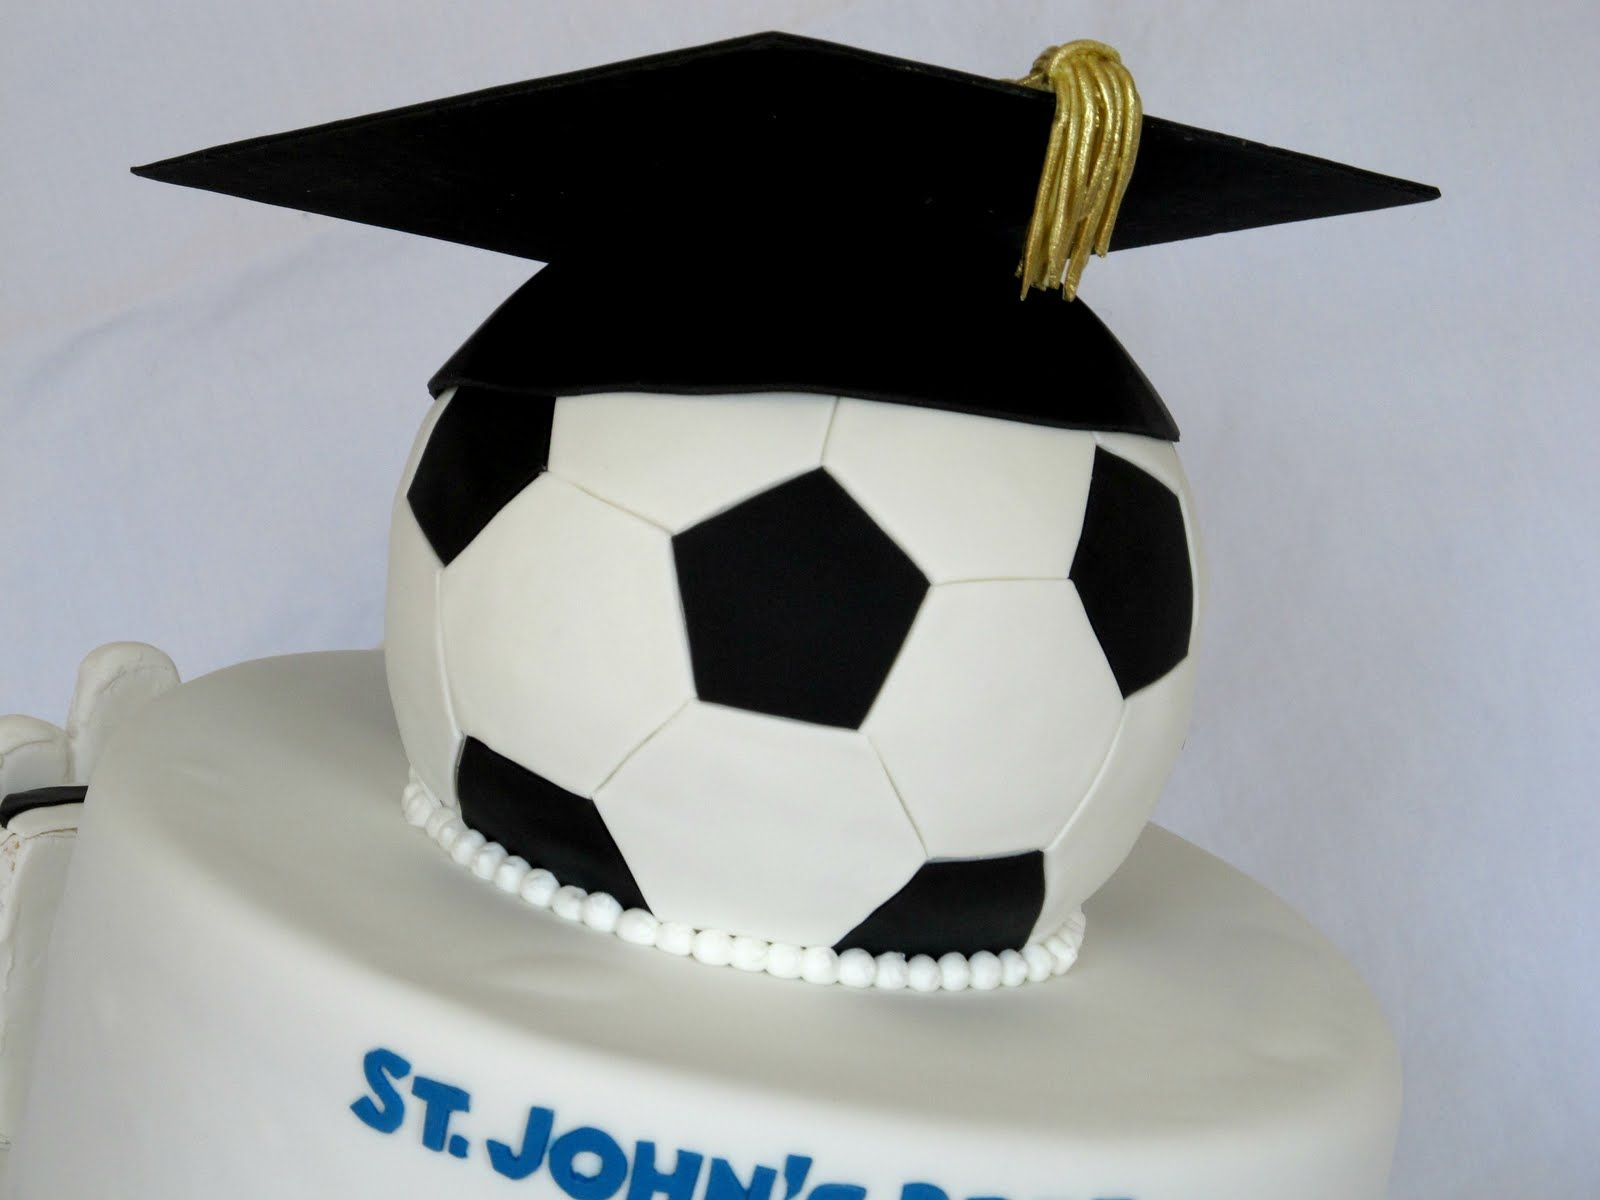 Just the soccer ball with the graduation hat on it. We will use that ...